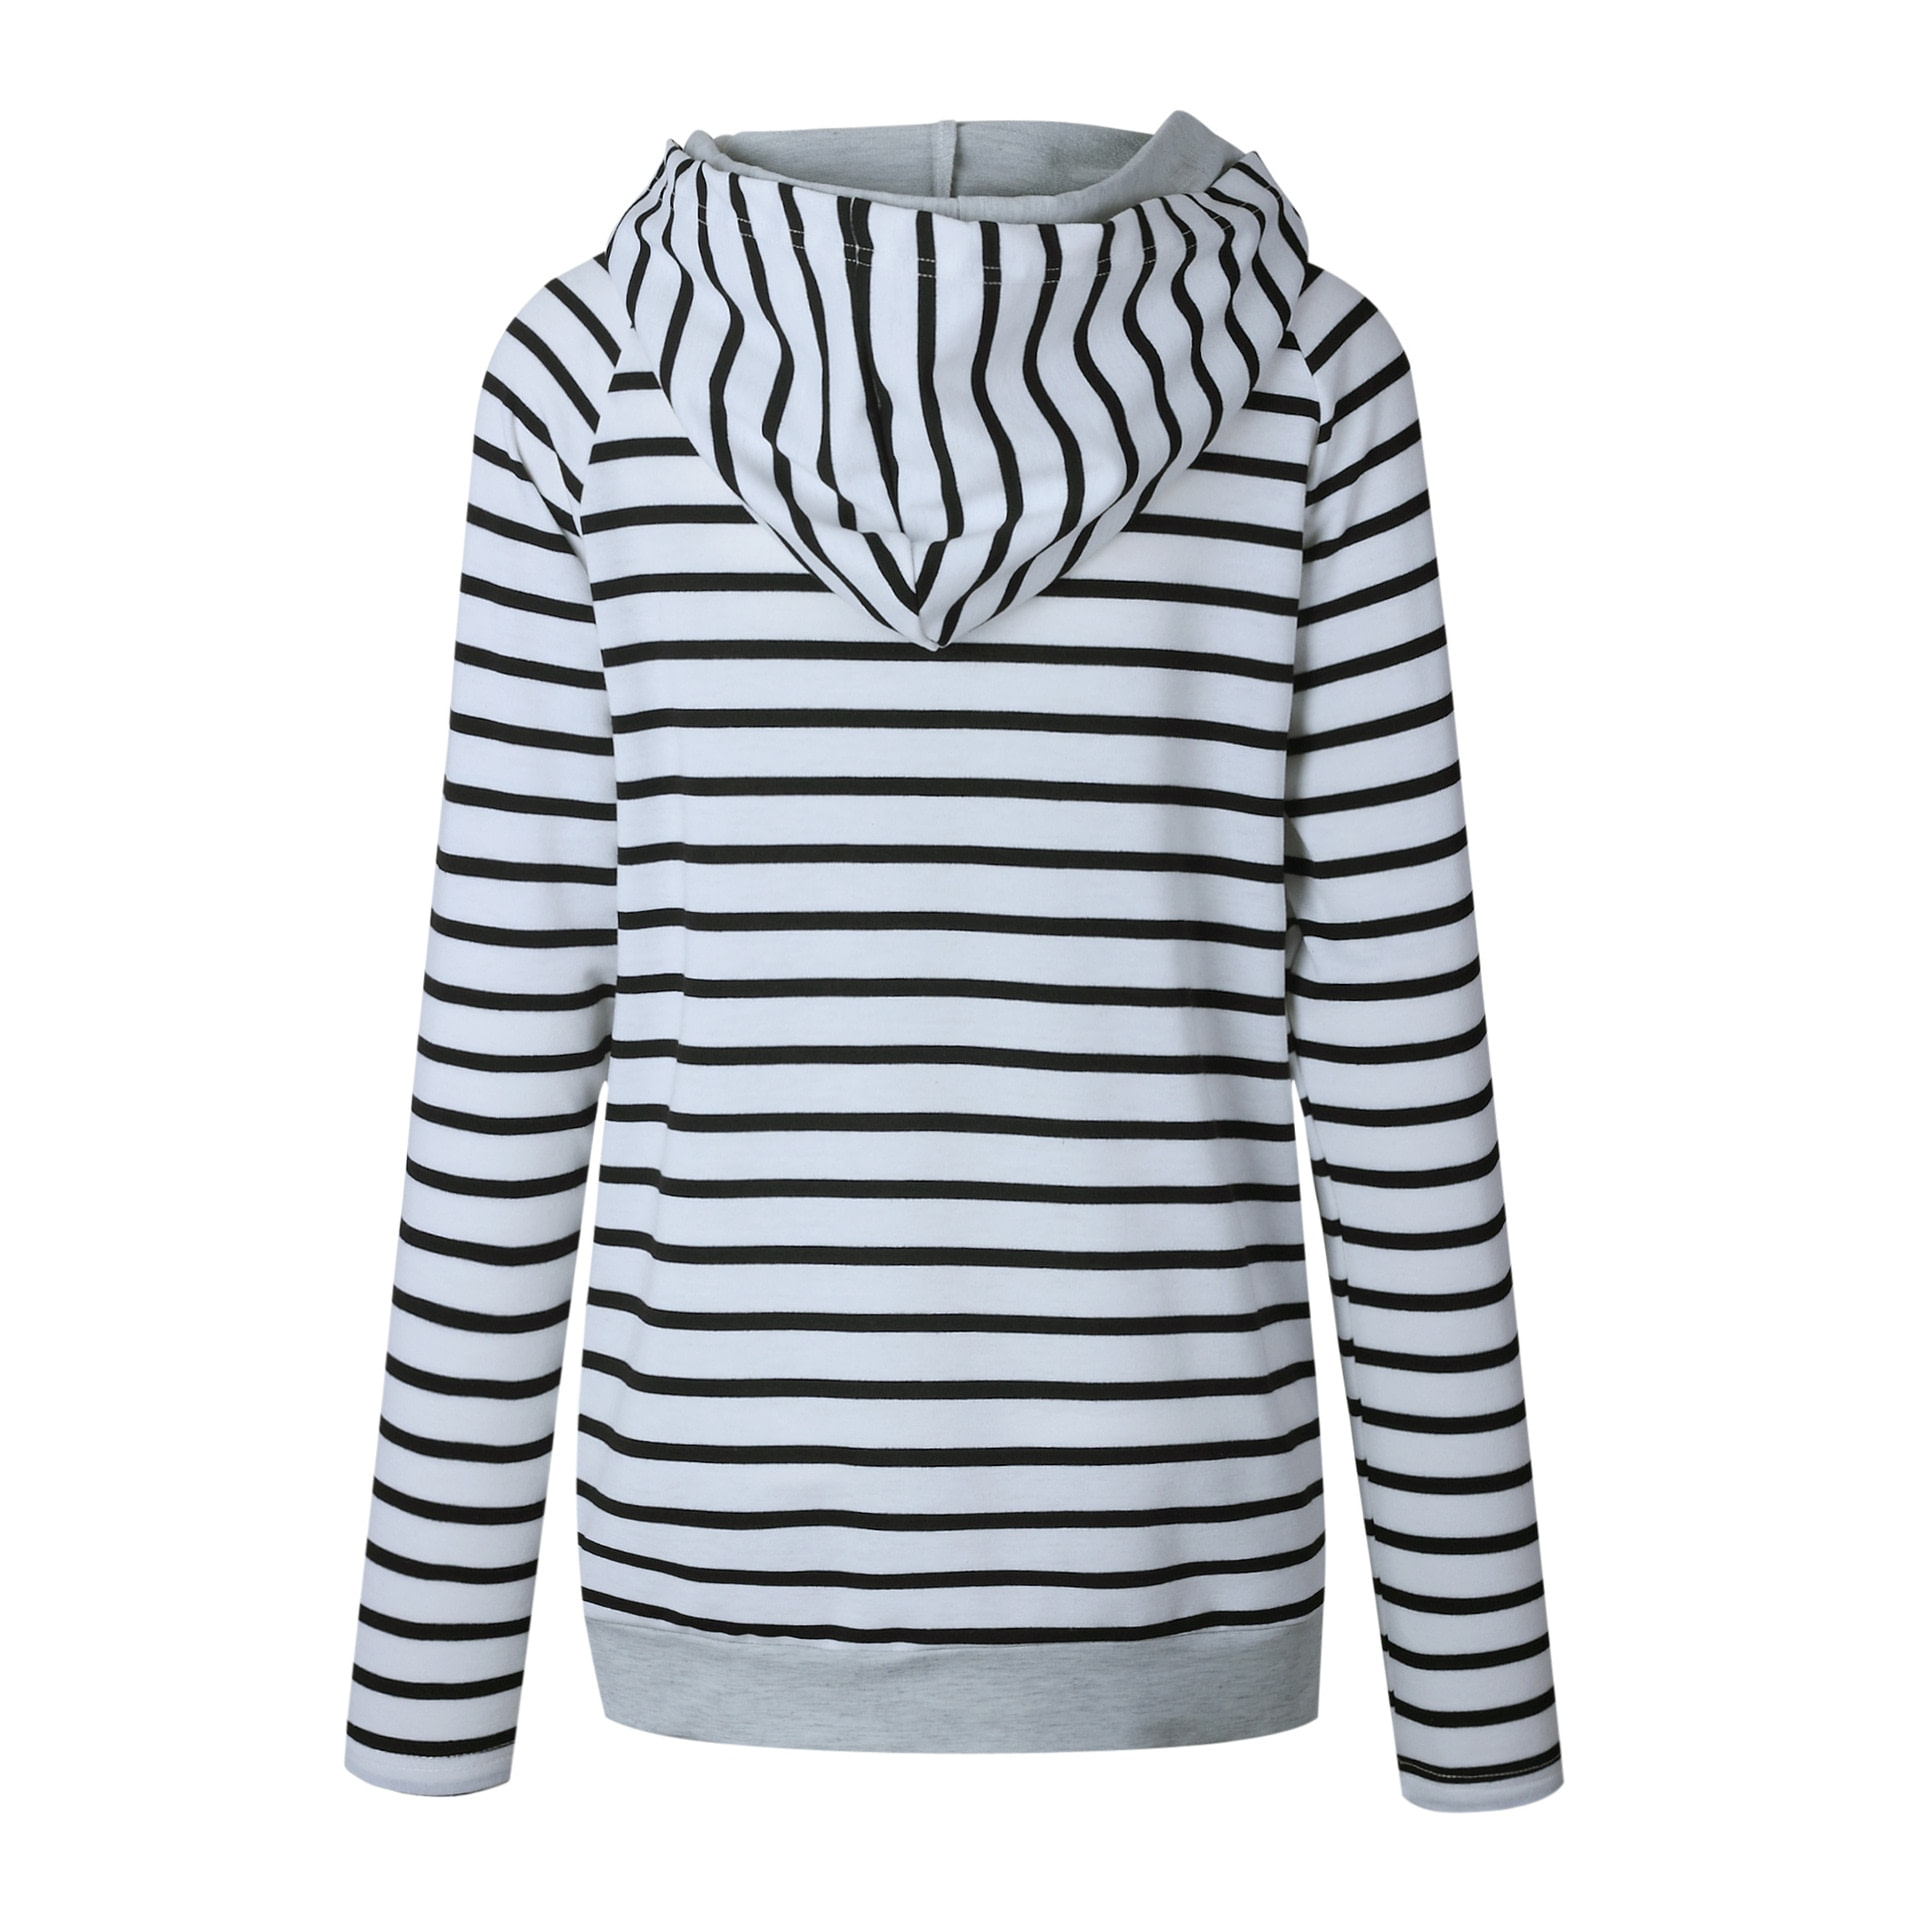 Women's Patchwork Striped Pullover Long Sleeve Hoodie, Tops With Pockets, Hooded Sweatshirt 34